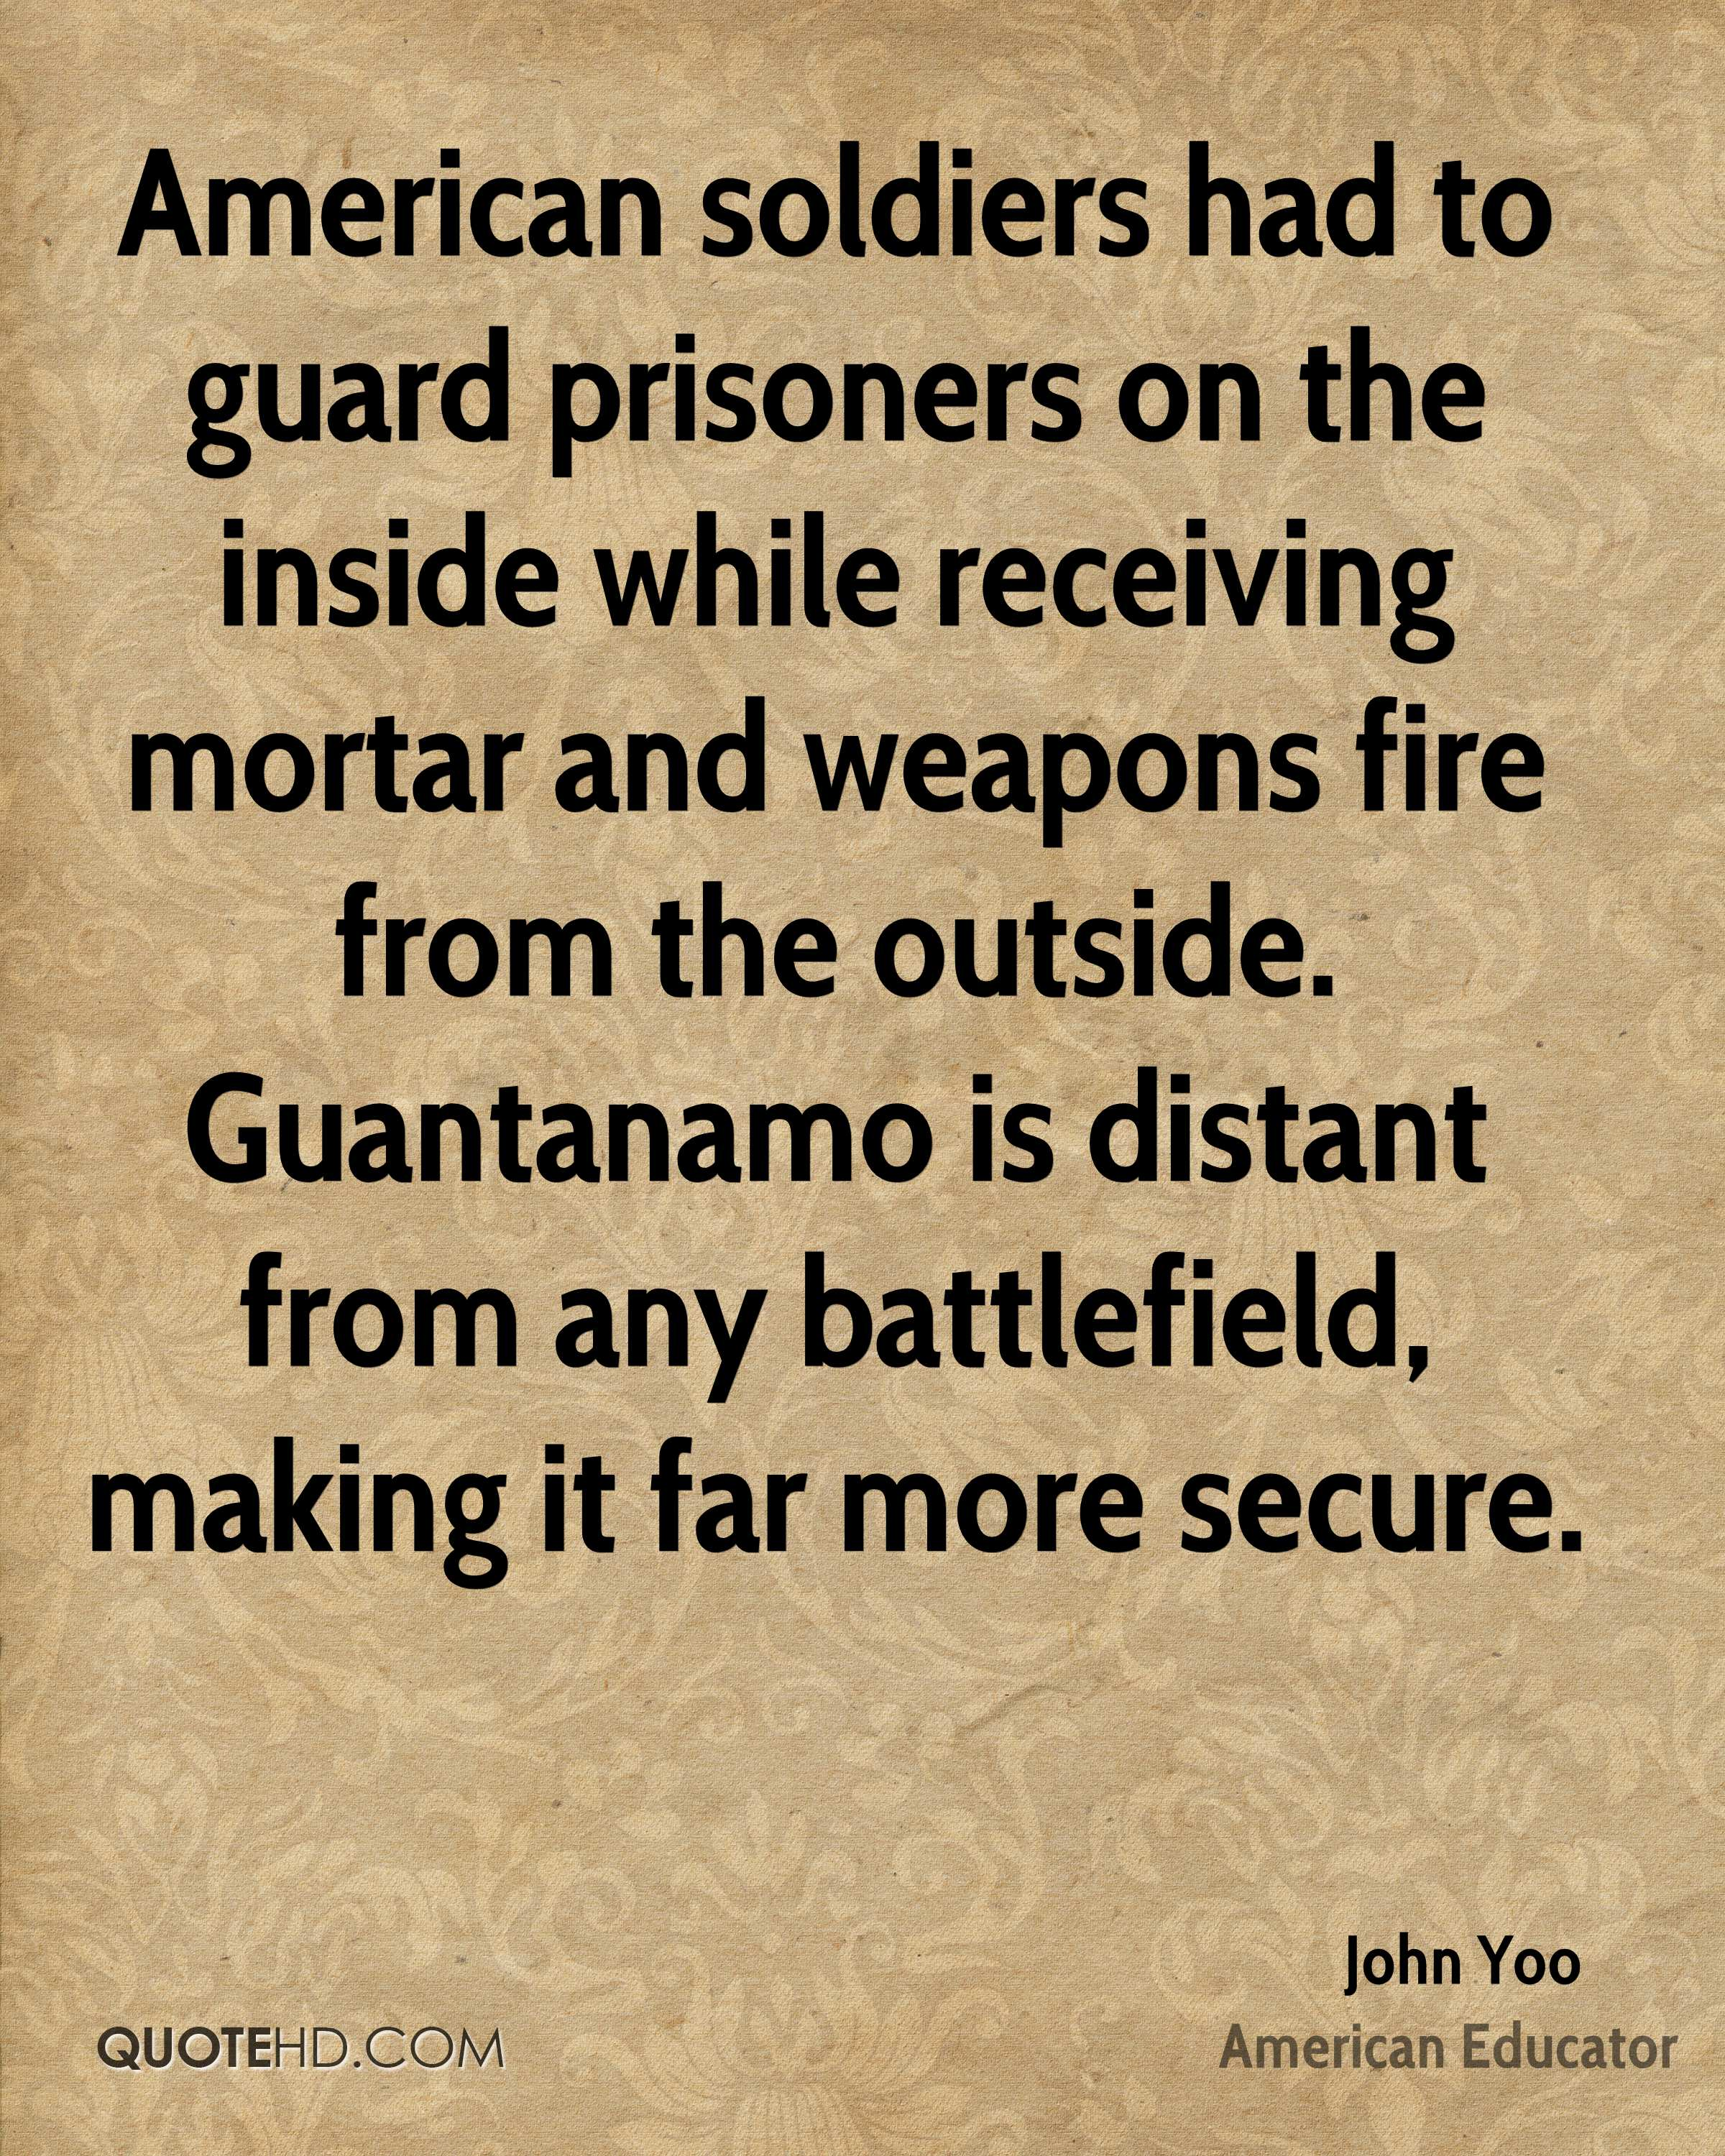 American soldiers had to guard prisoners on the inside while receiving mortar and weapons fire from the outside. Guantanamo is distant from any battlefield, making it far more secure.